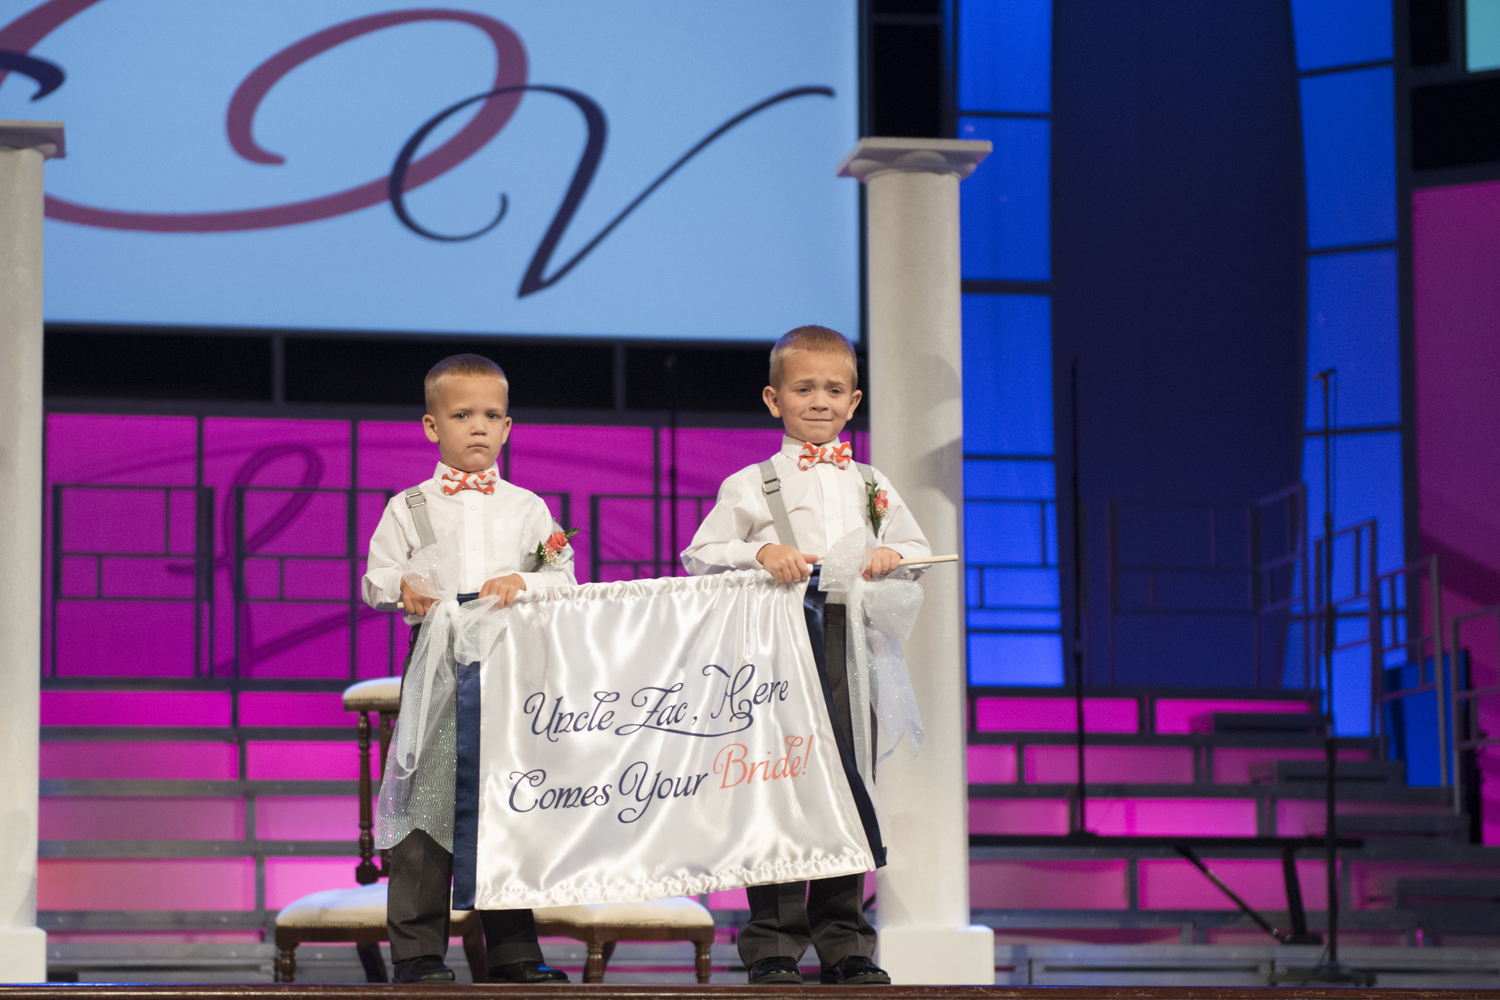 Ring bearers holding Here Comes Your Bride sign